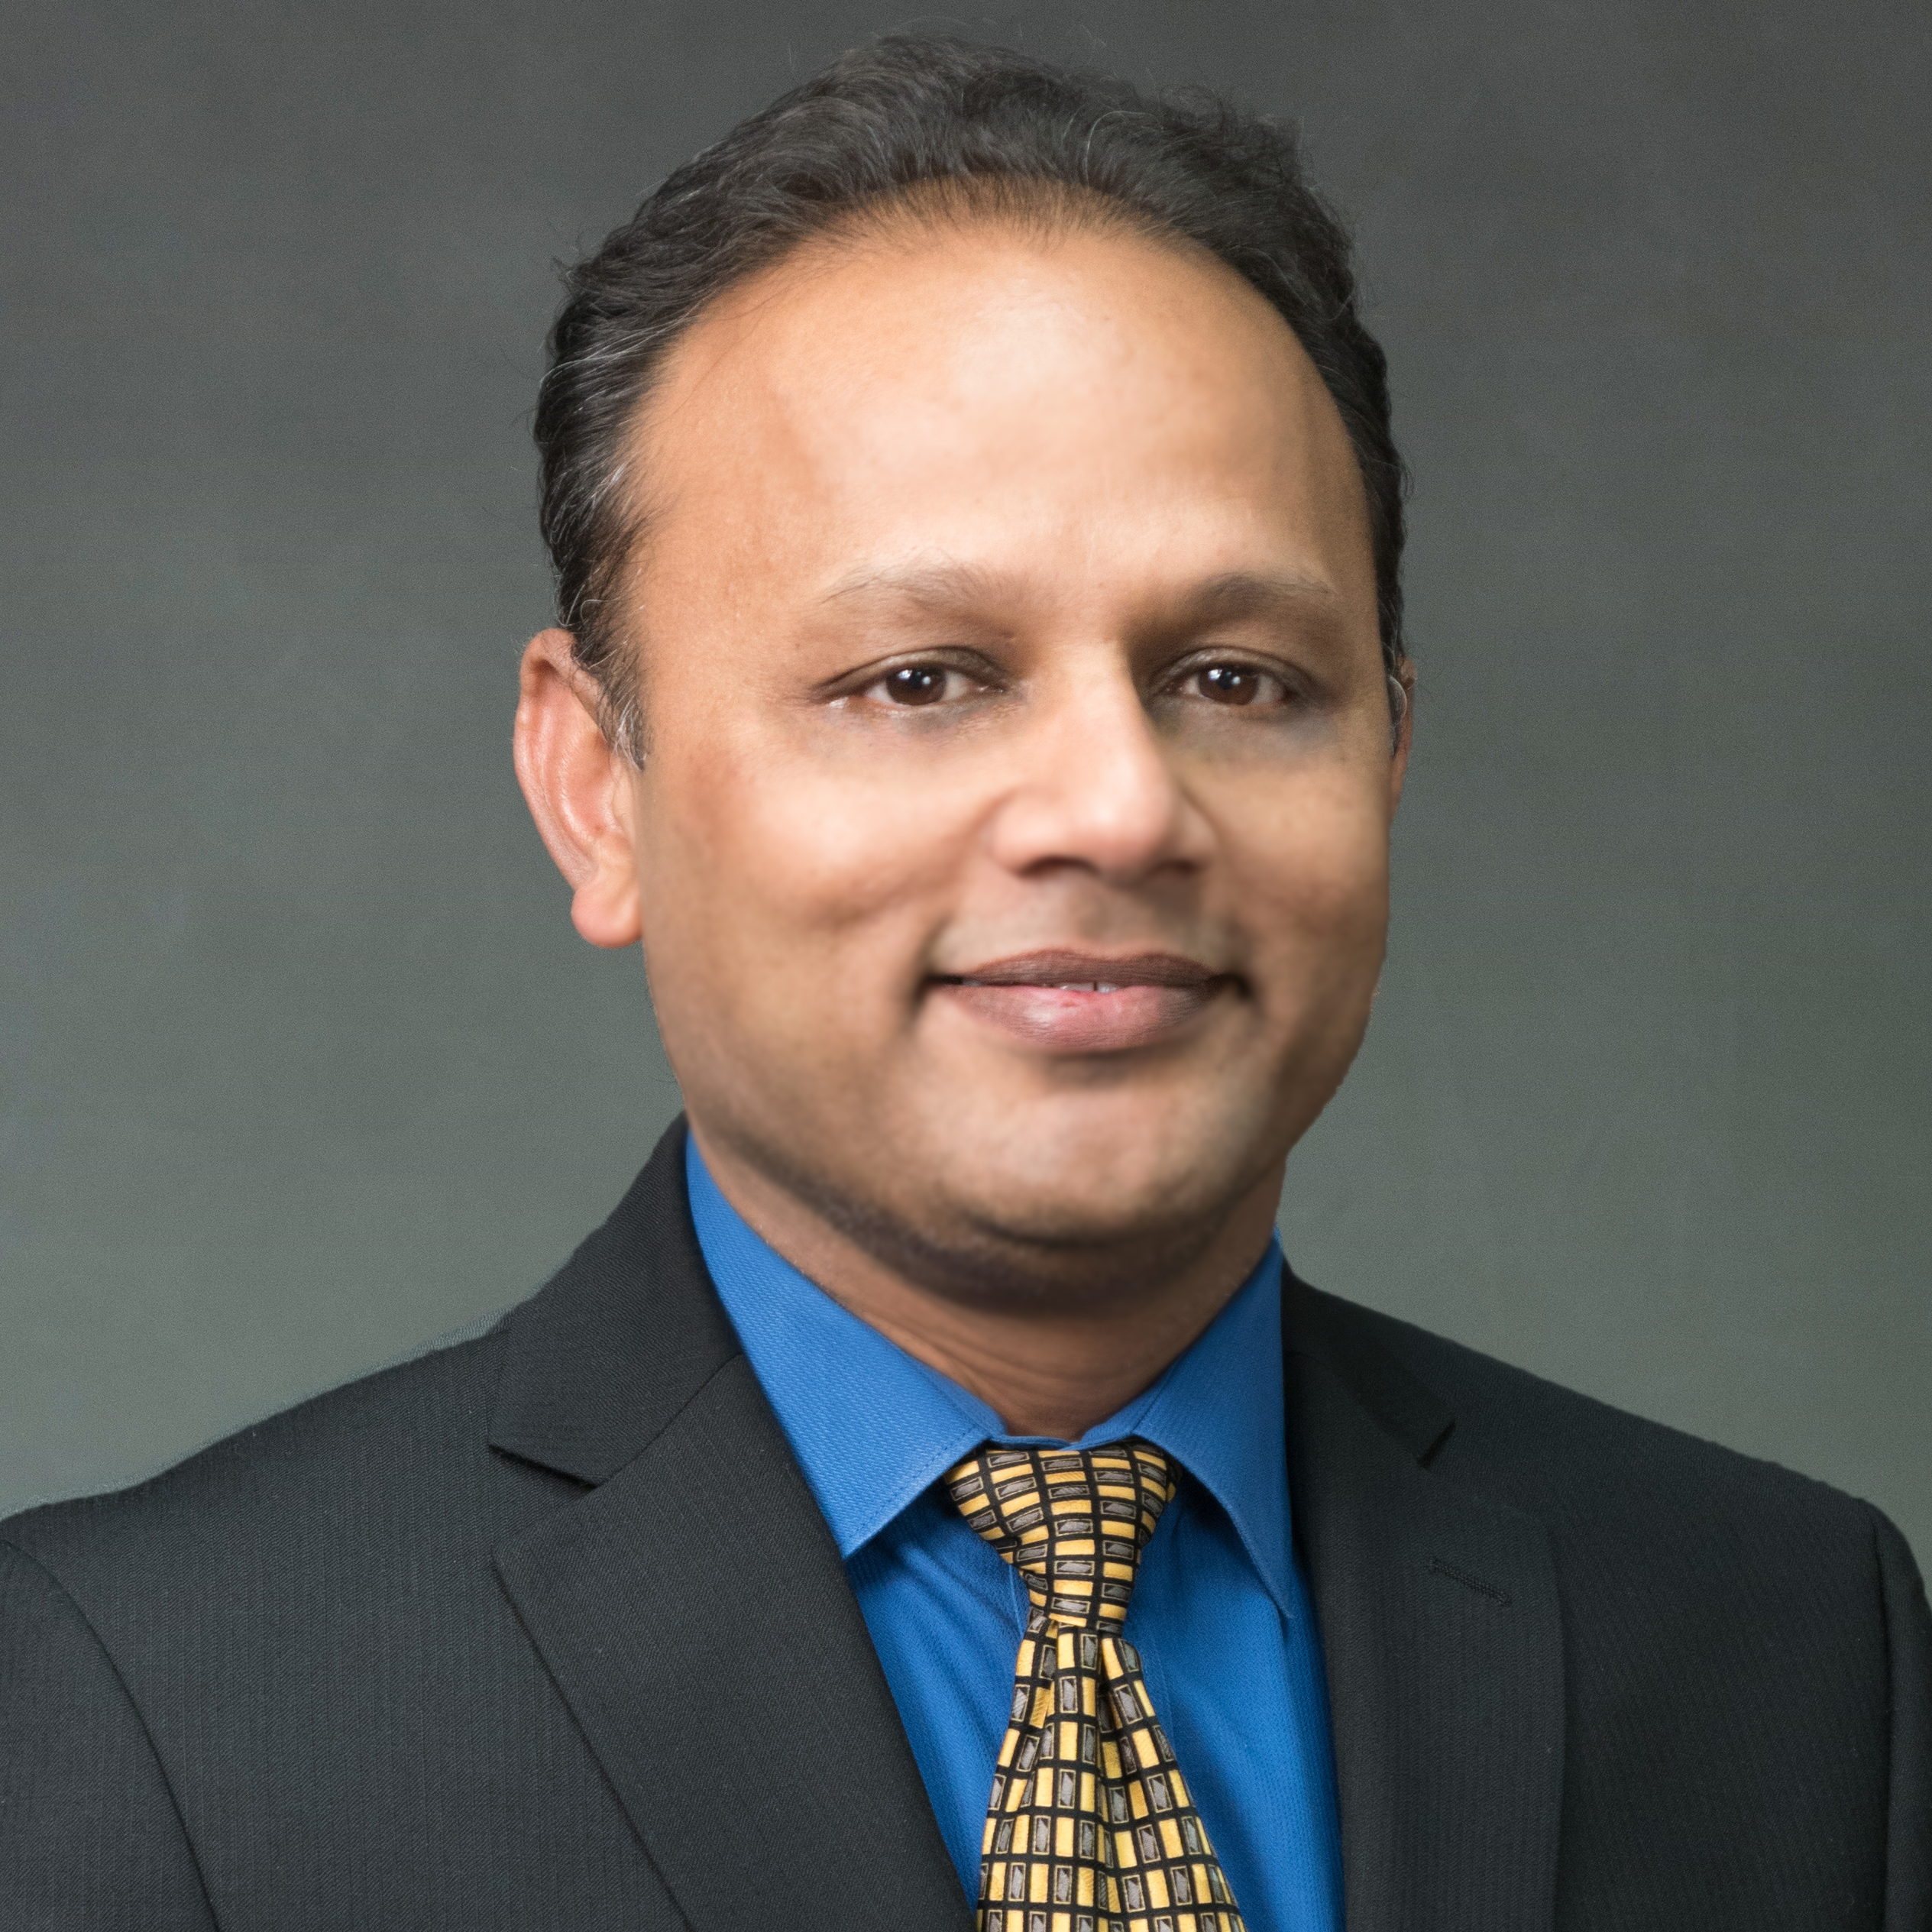 Dr. Vijay Poreddy - Gastroenterologist at Austin Gastro - Central TX